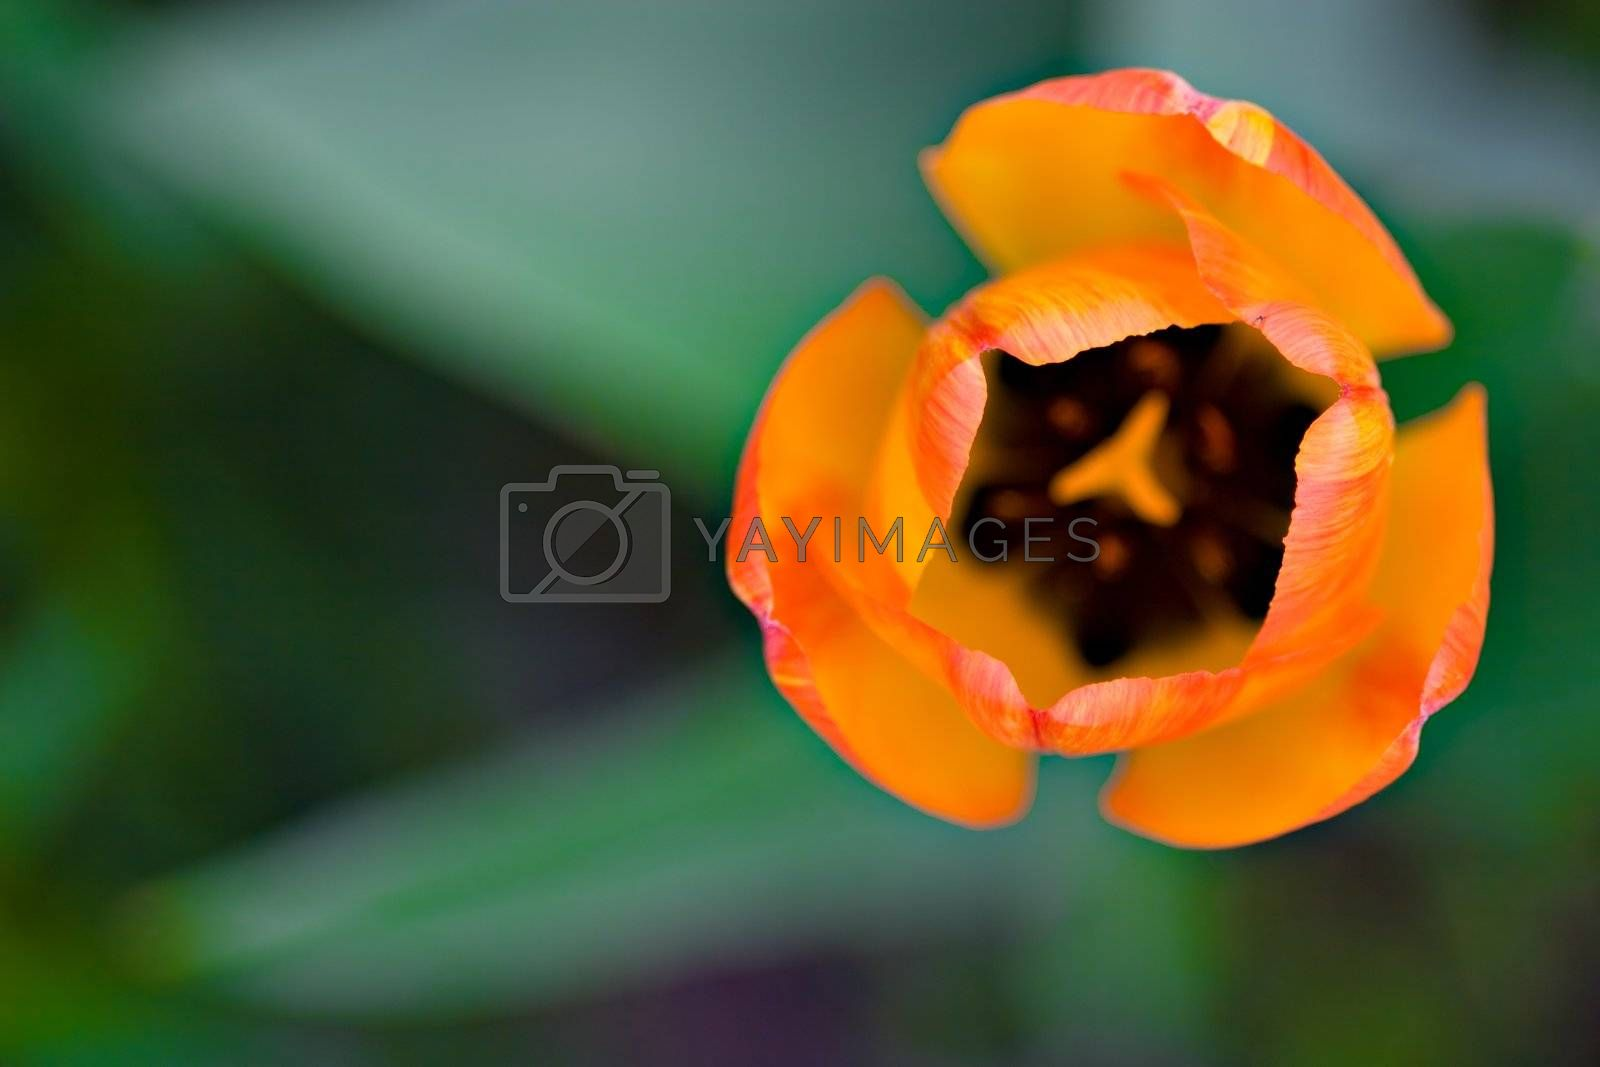 Extreme close-up of a Dutch Tulip, shot from above. Very shallow depth of field.